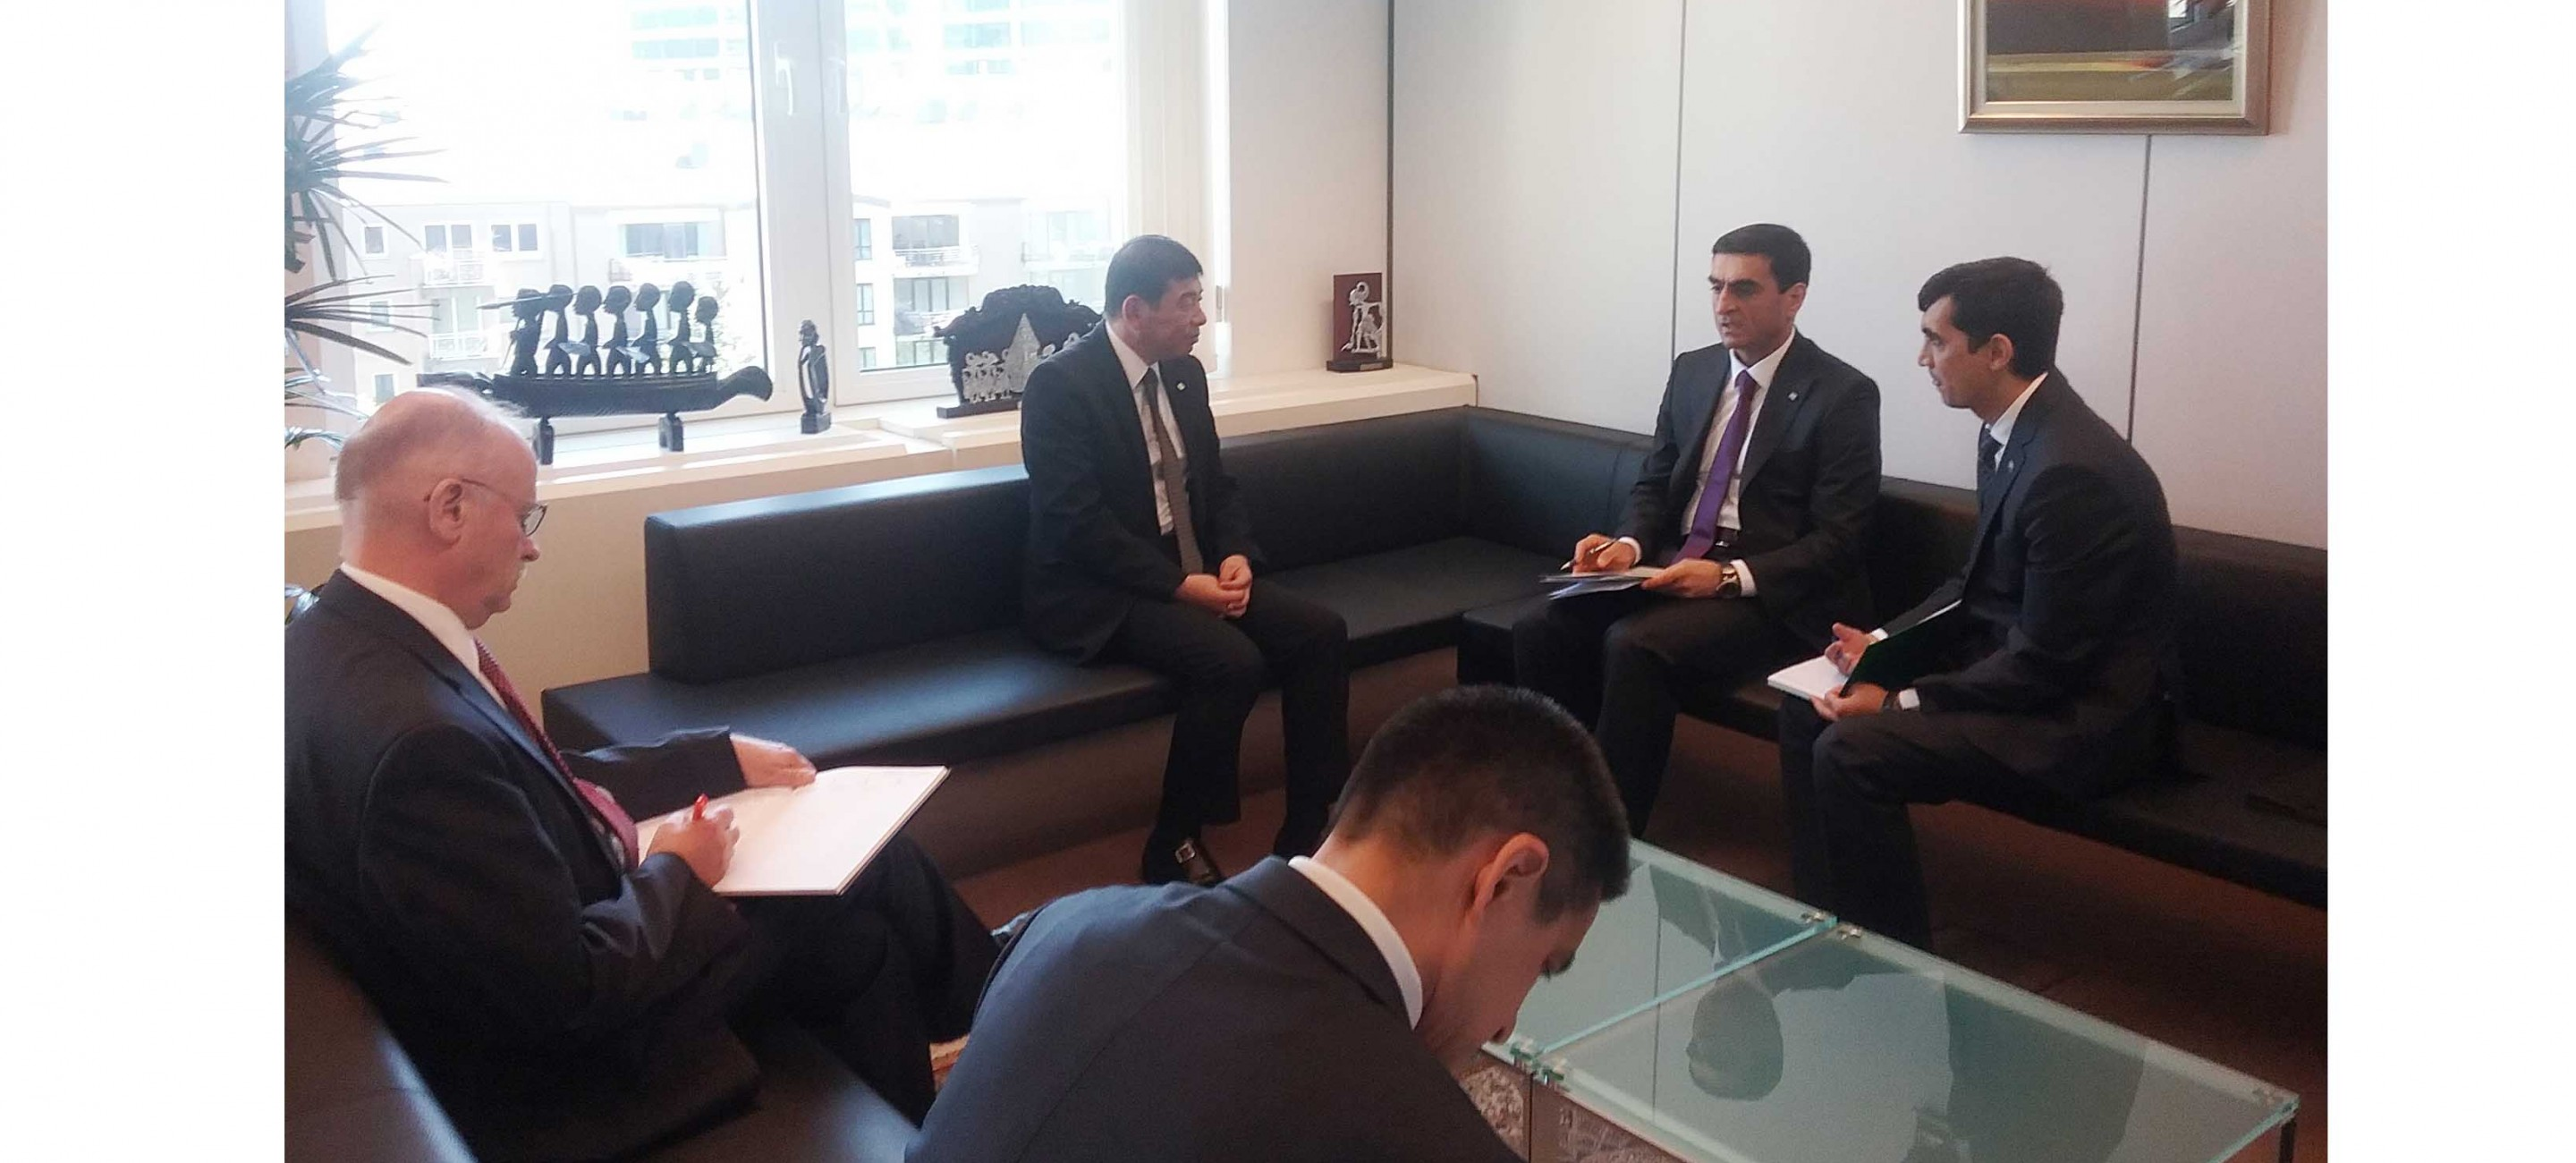 DELEGATION OF TURKMENISTAN MET WITH THE SECRETARY GENERAL OF THE WORLD CUSTOMS ORGANIZATION